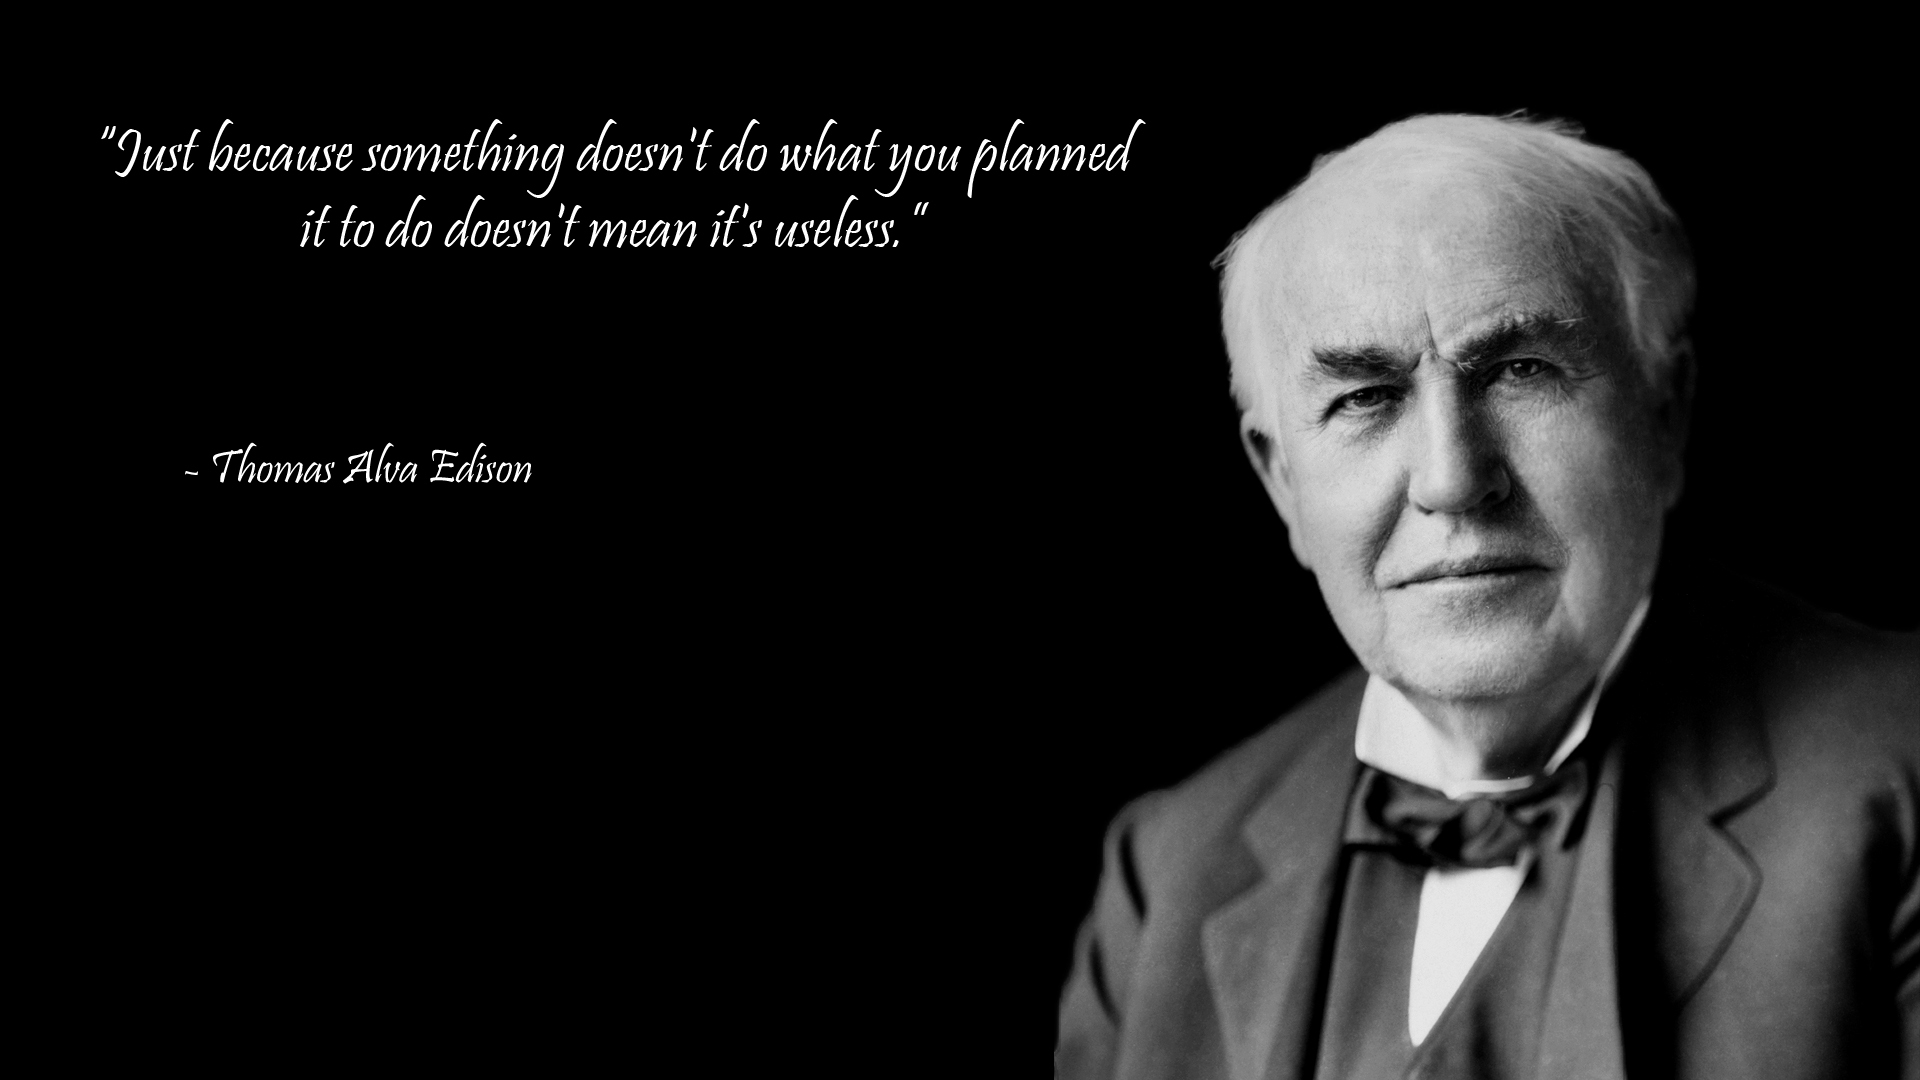 Thomas A. Edison's quote #4